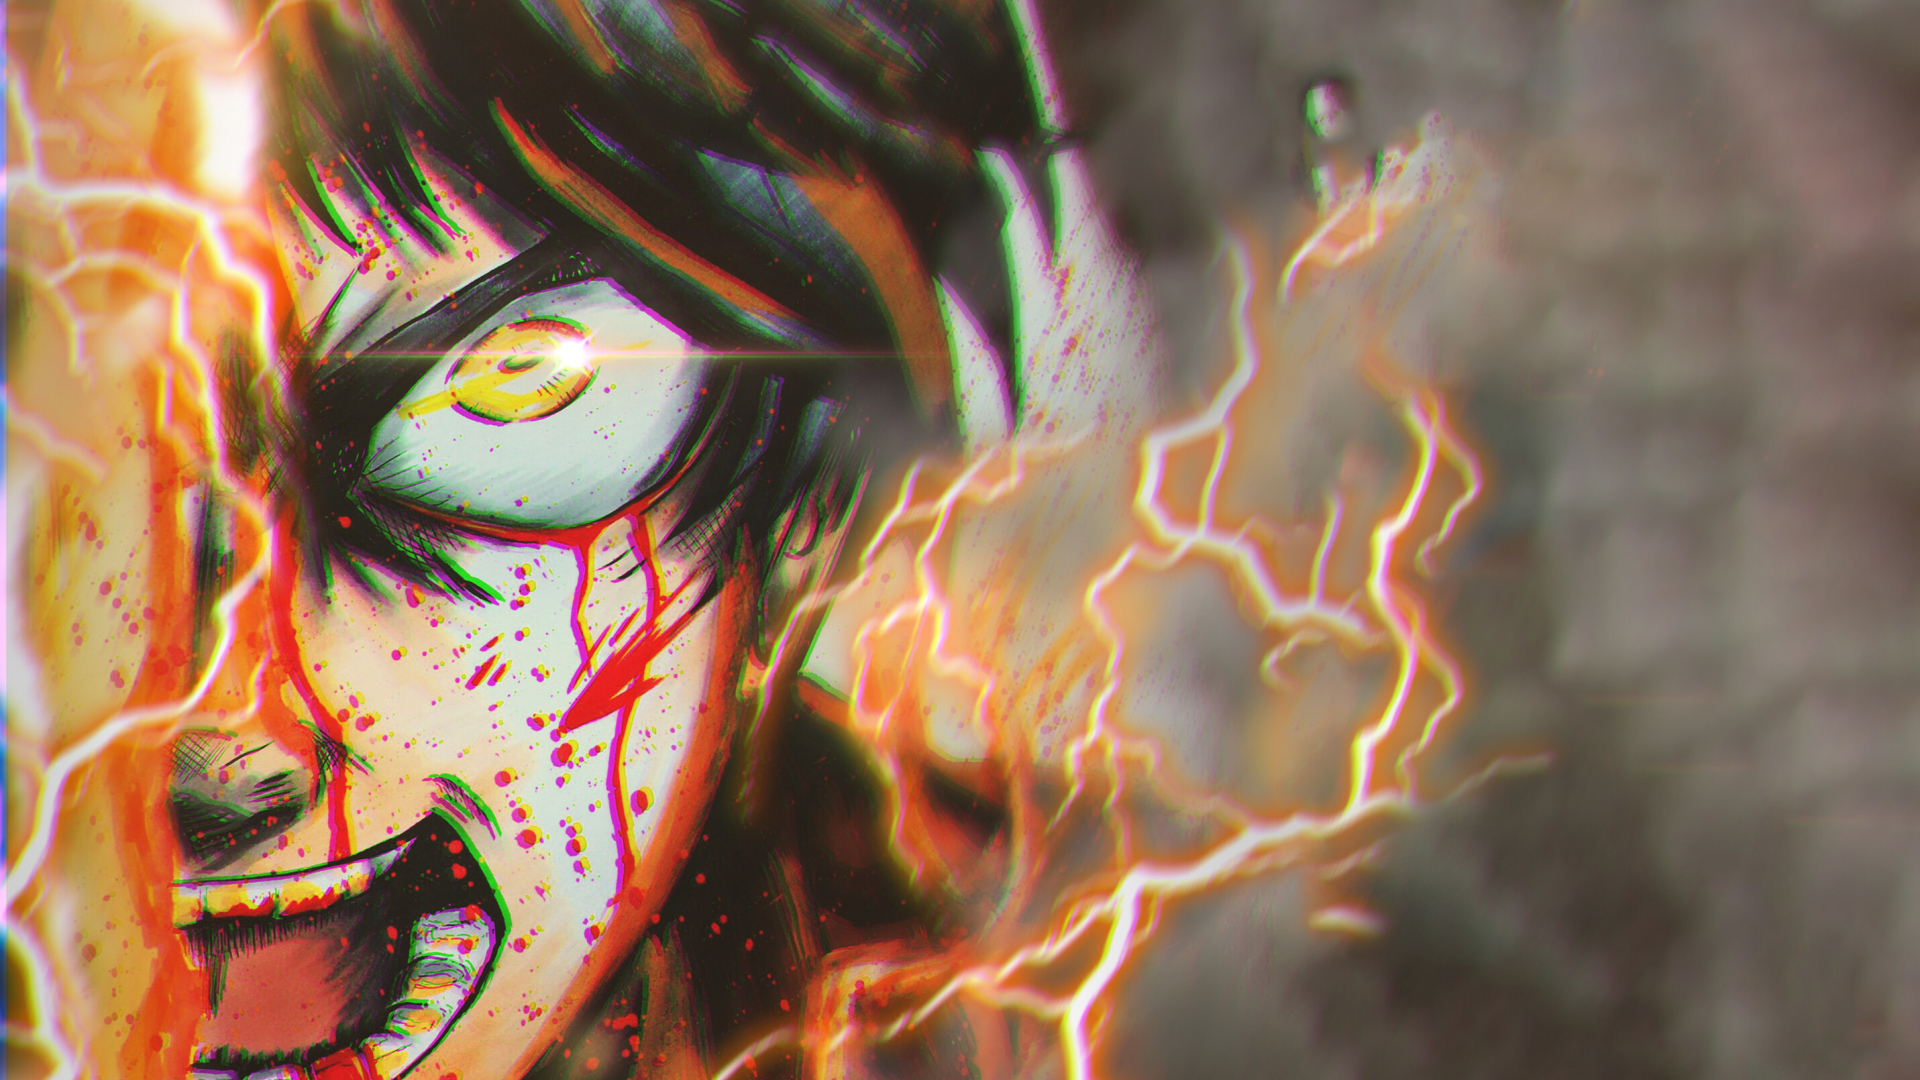 Attack on Titan Chapter 138 Spoilers and Leaks Out: Manga Issue will have 45 Pages Confirmed ...